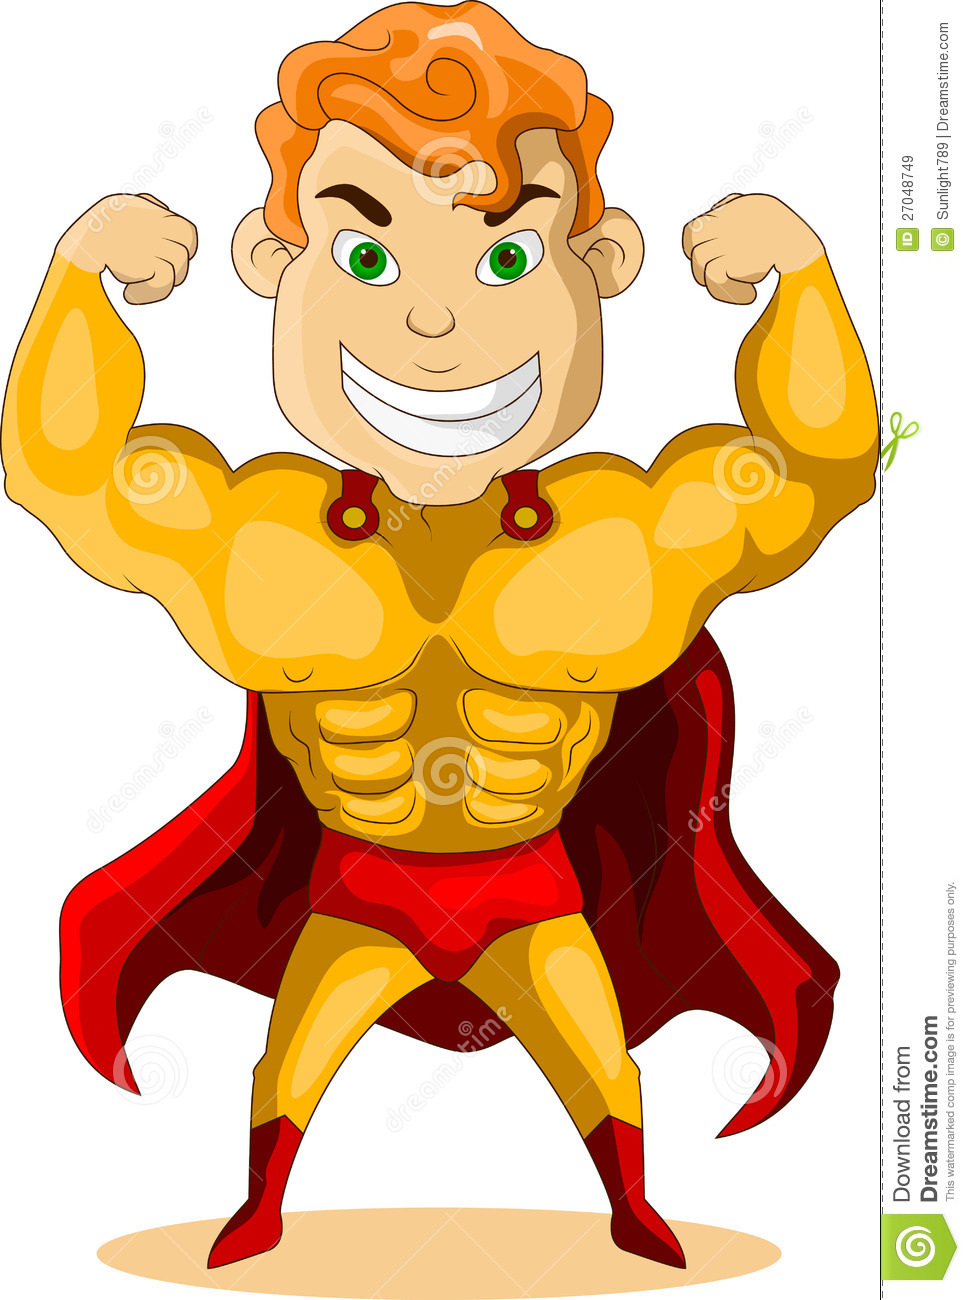 Strong Super Hero Royalty Free Stock Images - Image: 27048749 Superhero Flying Vector